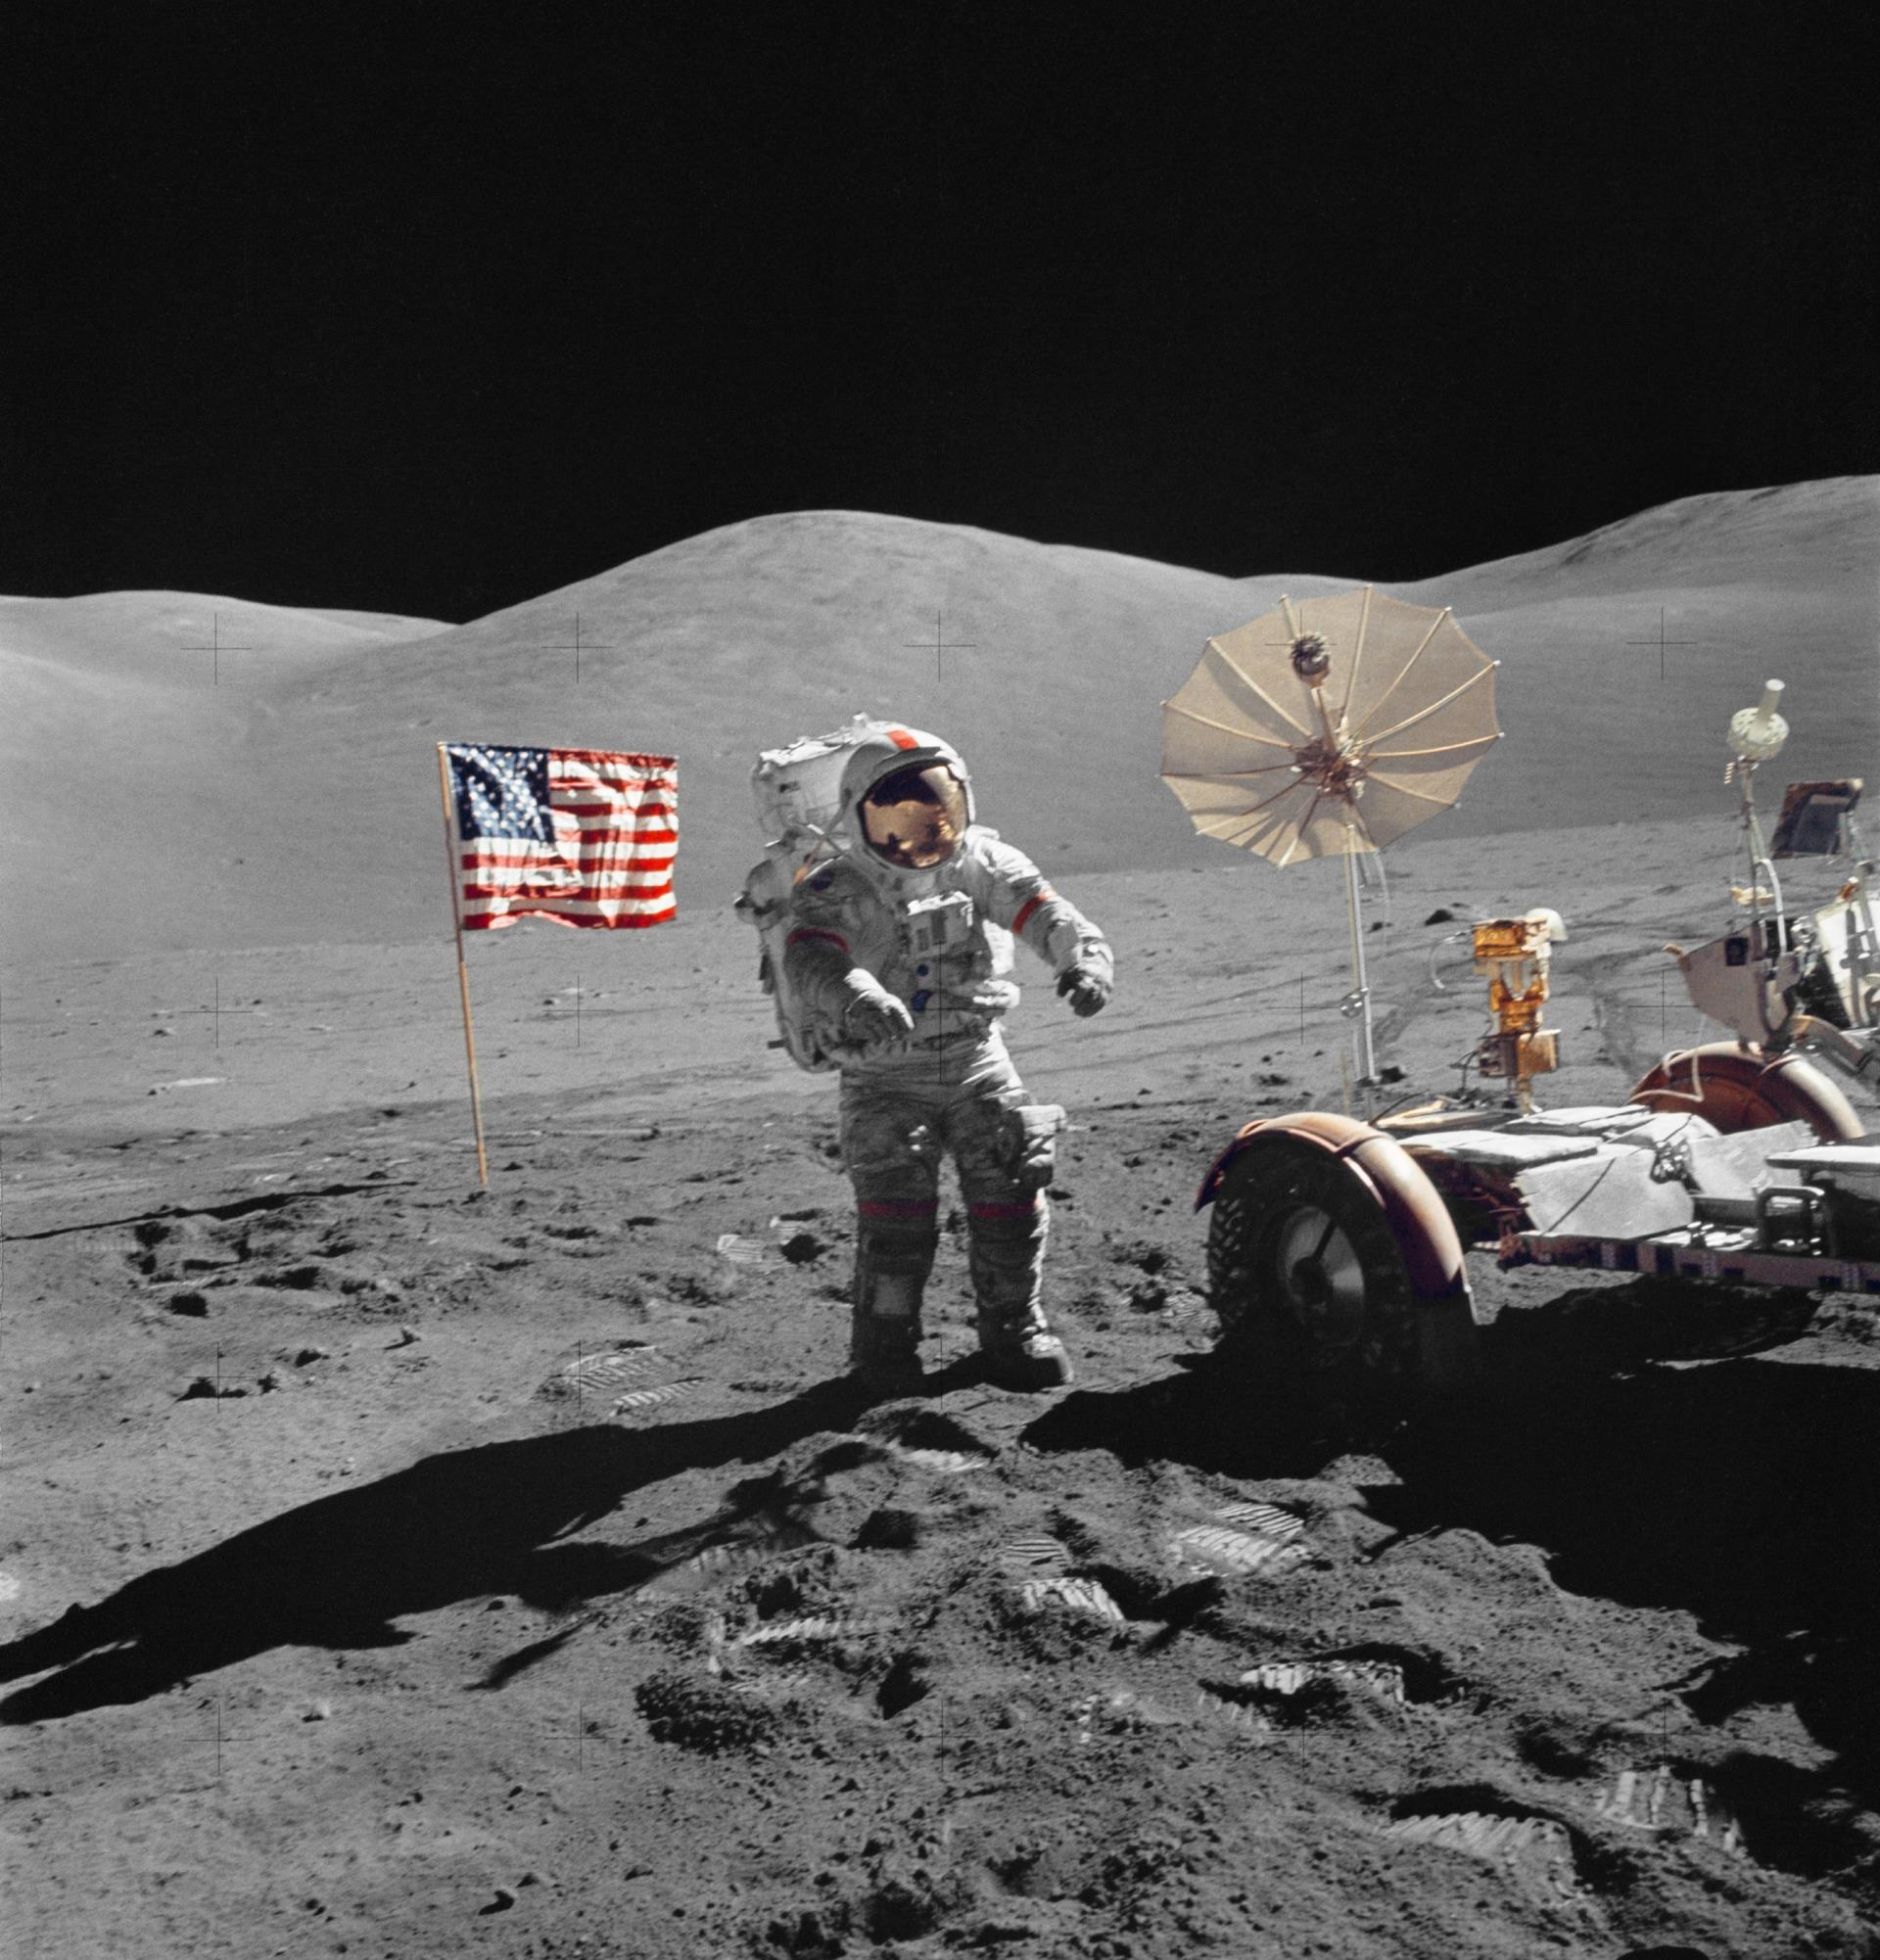 US flag and astronaut with lunar rover on the moon